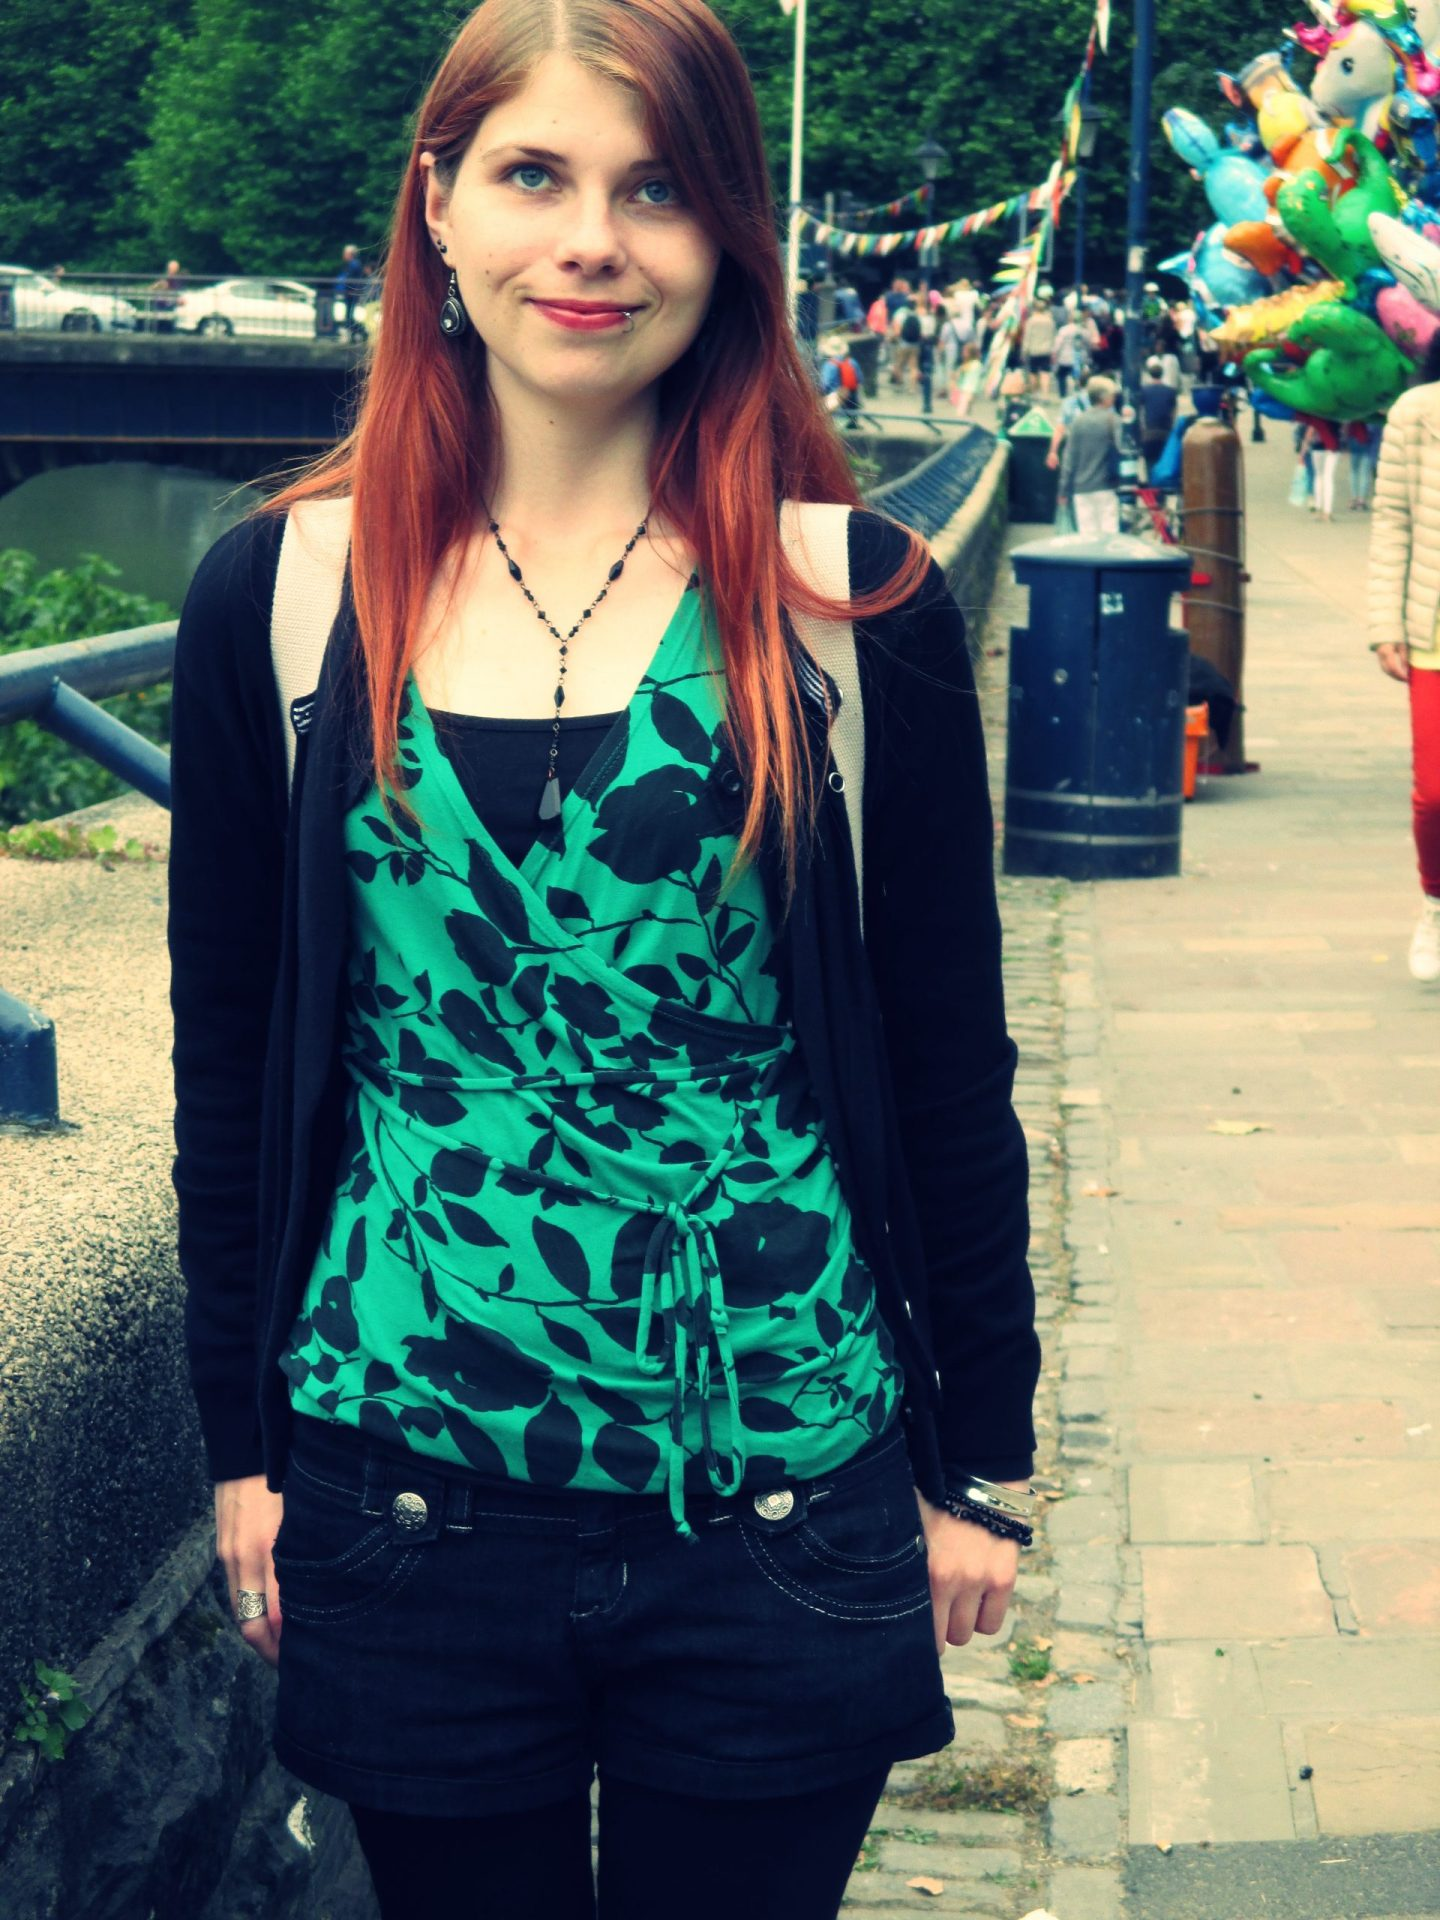 A photo of me in Bristol on a pavement with people and balloons behind me. I've got long red hair and I'm wearing a green and black top. I've got a rucksack on my shoulders. This is the first outing I had with my stoma.